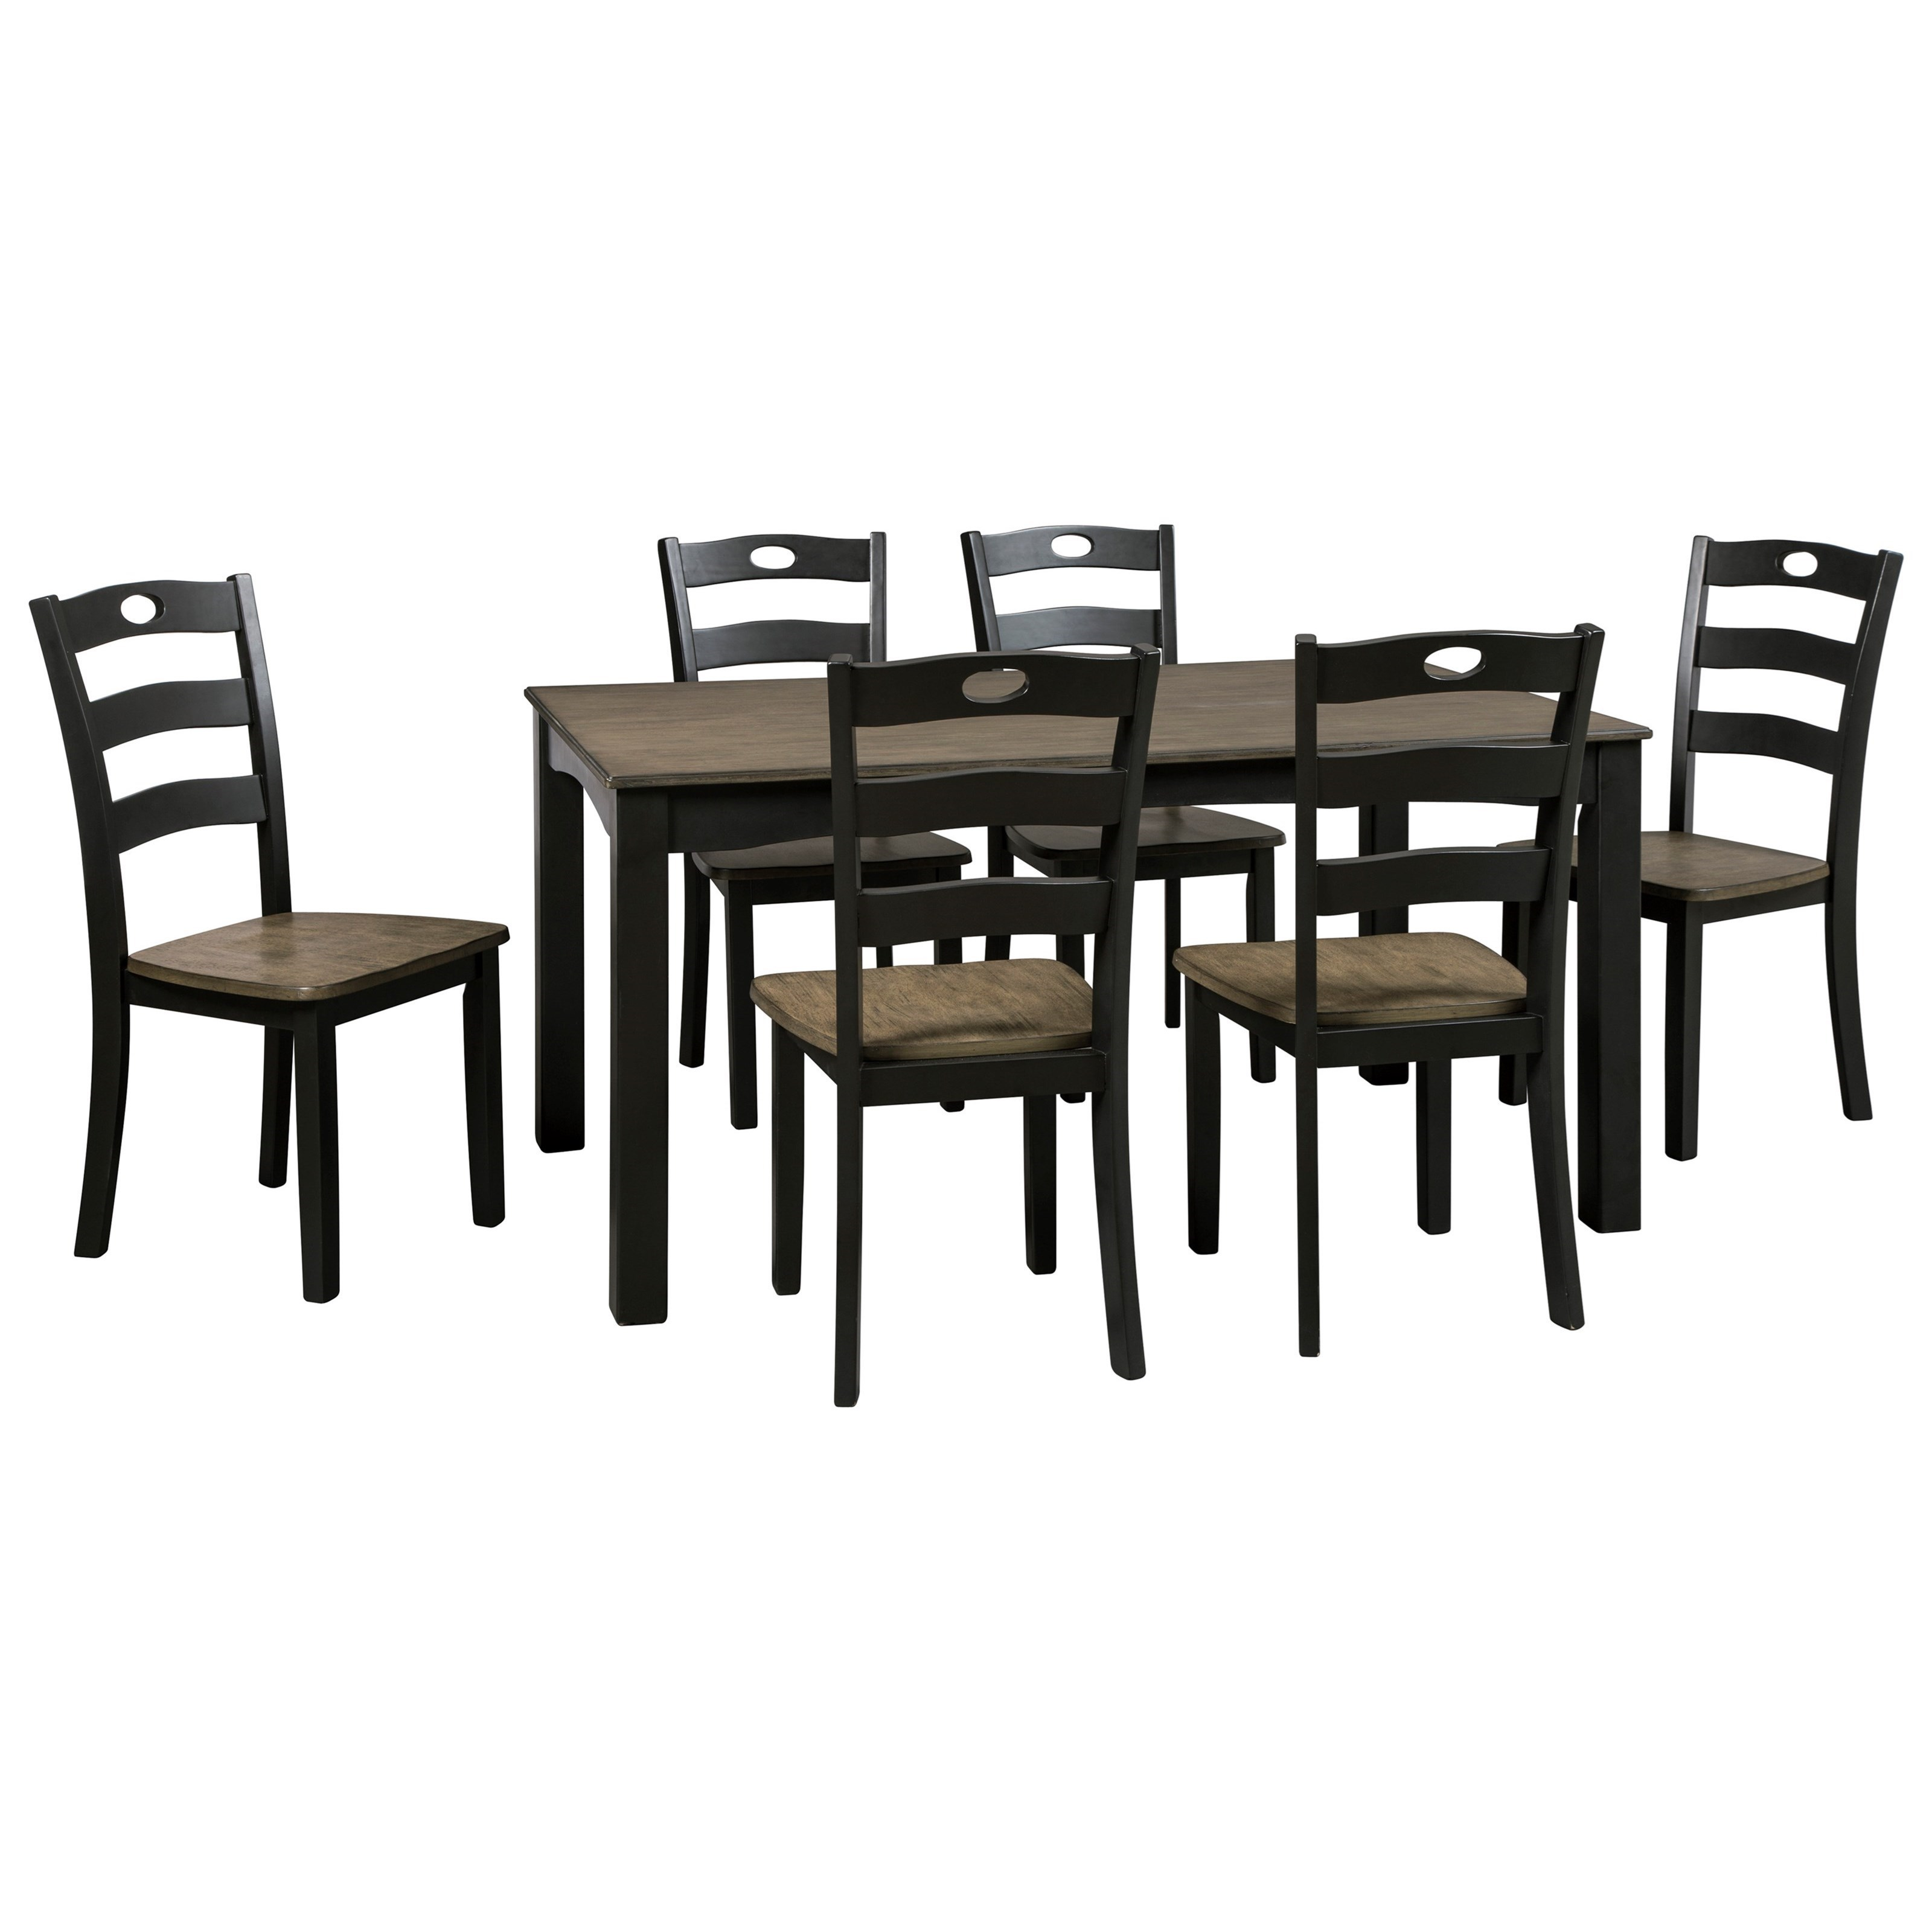 Signature Design by Ashley Froshburg Two-Tone Finish 7-Piece Dining Room Table Set  sc 1 st  Boulevard Home Furnishings & Signature Design by Ashley Froshburg Two-Tone Finish 7-Piece Dining ...